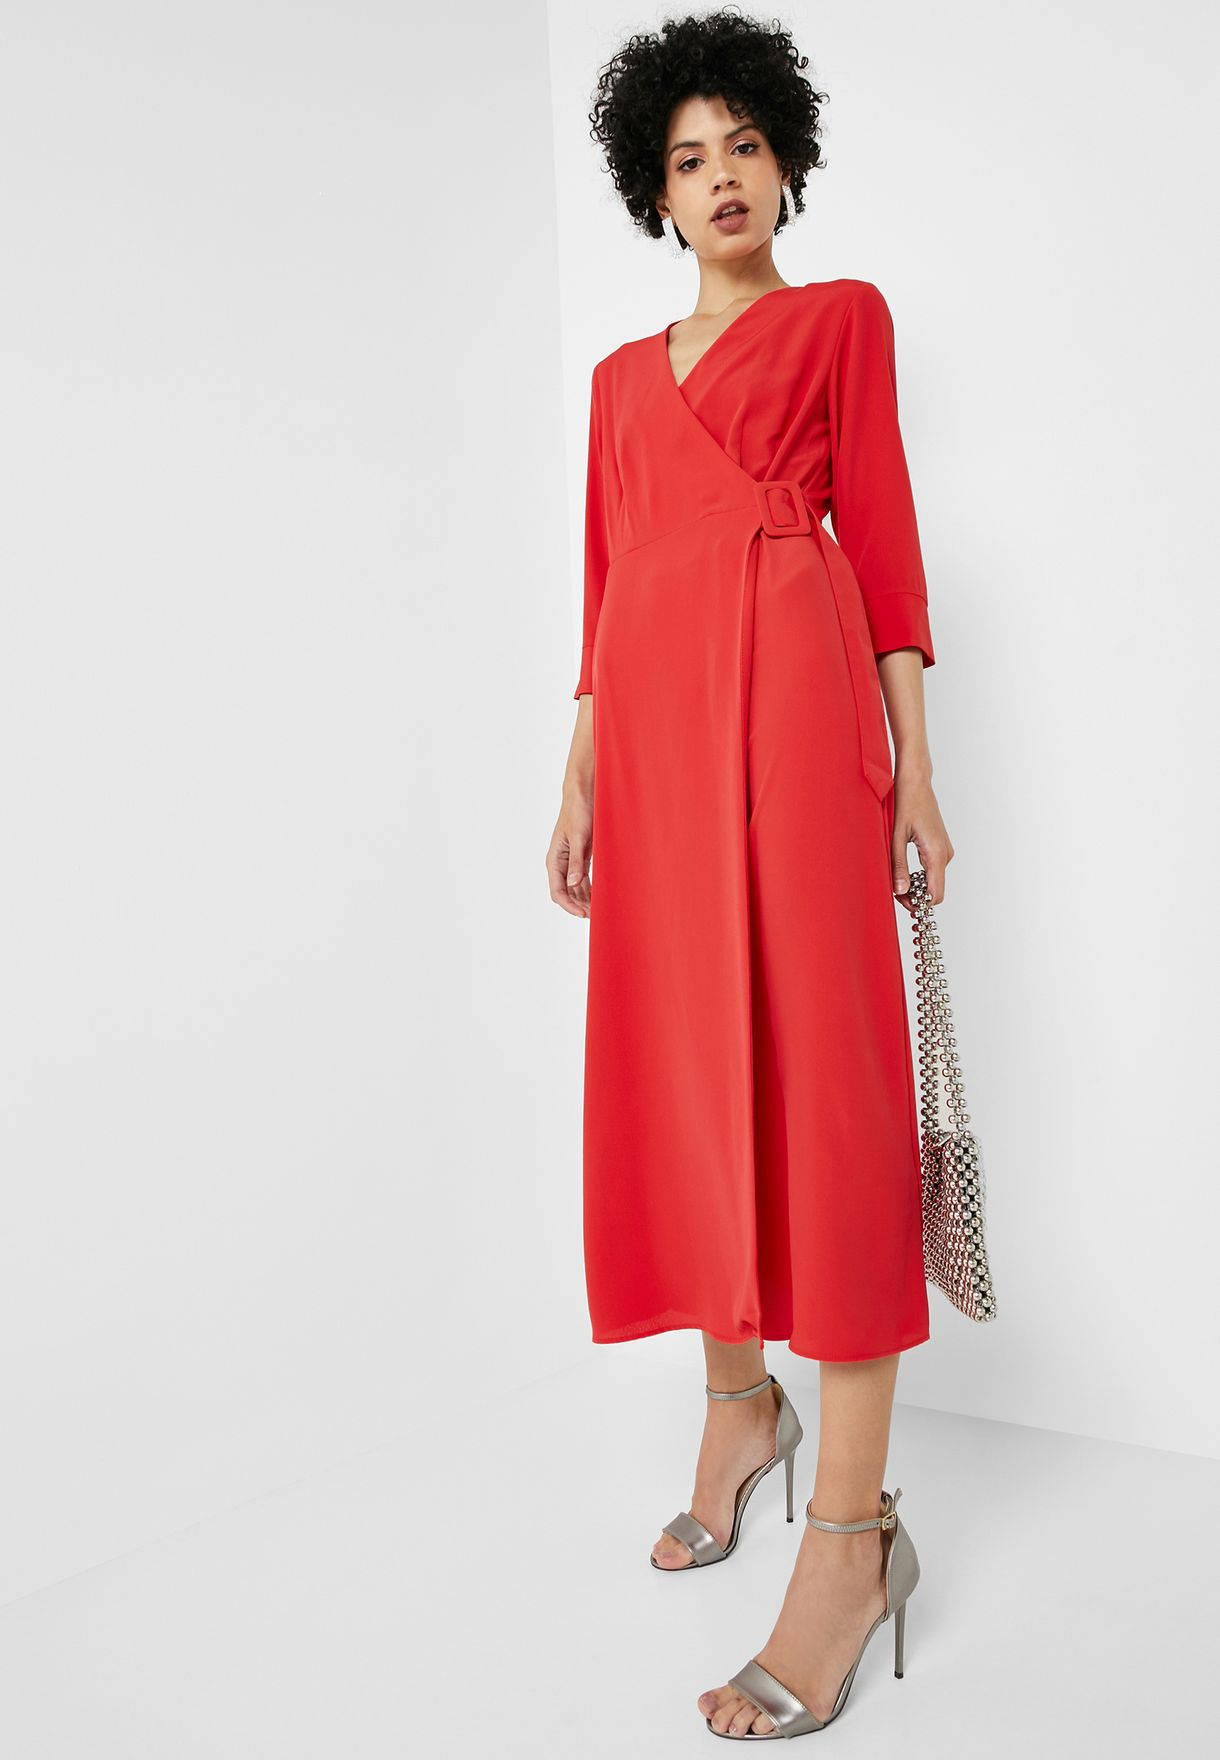 ba691d36f2 Shop Topshop red Belted Wrap Dress 10N09QRED for Women in UAE ...